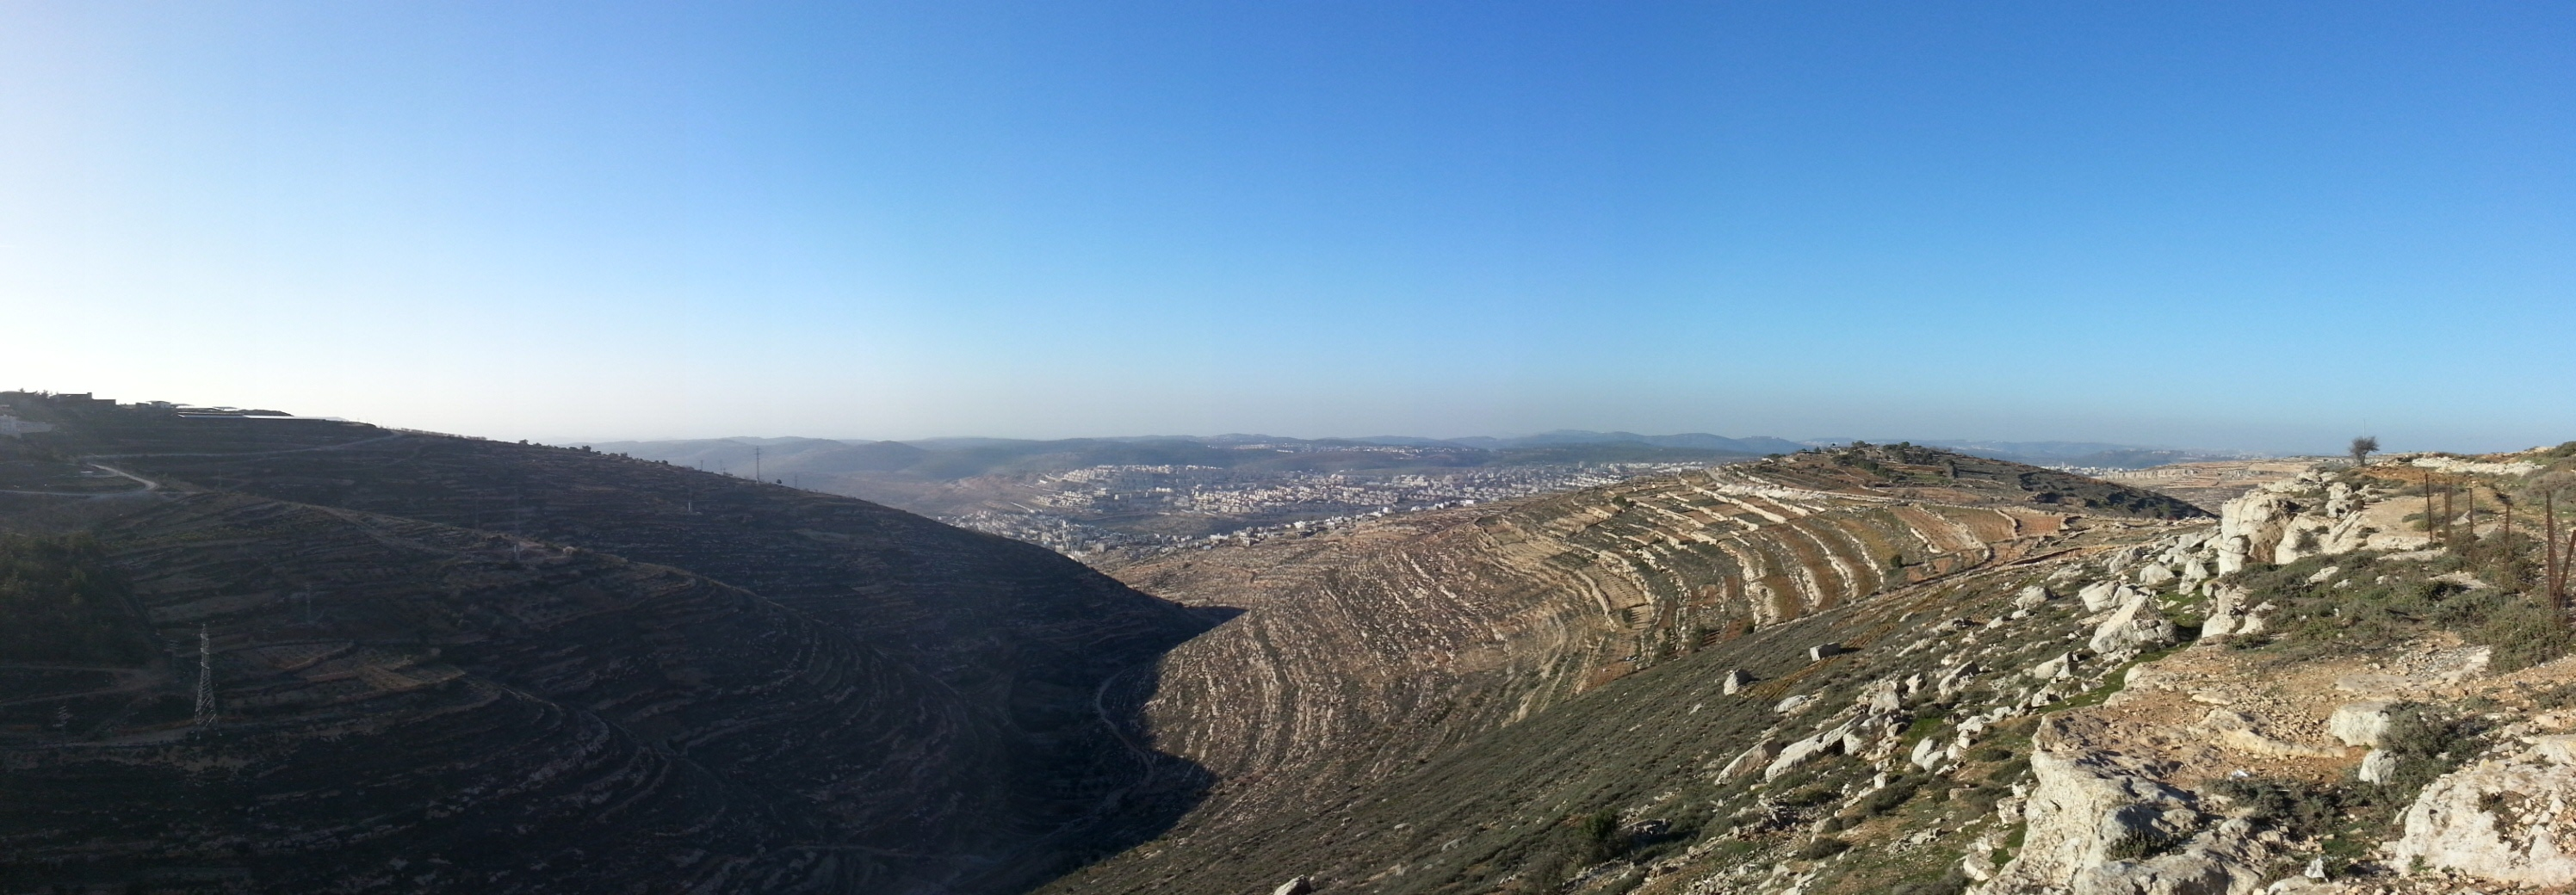 View over the Judean Hills from Derech HaAvot